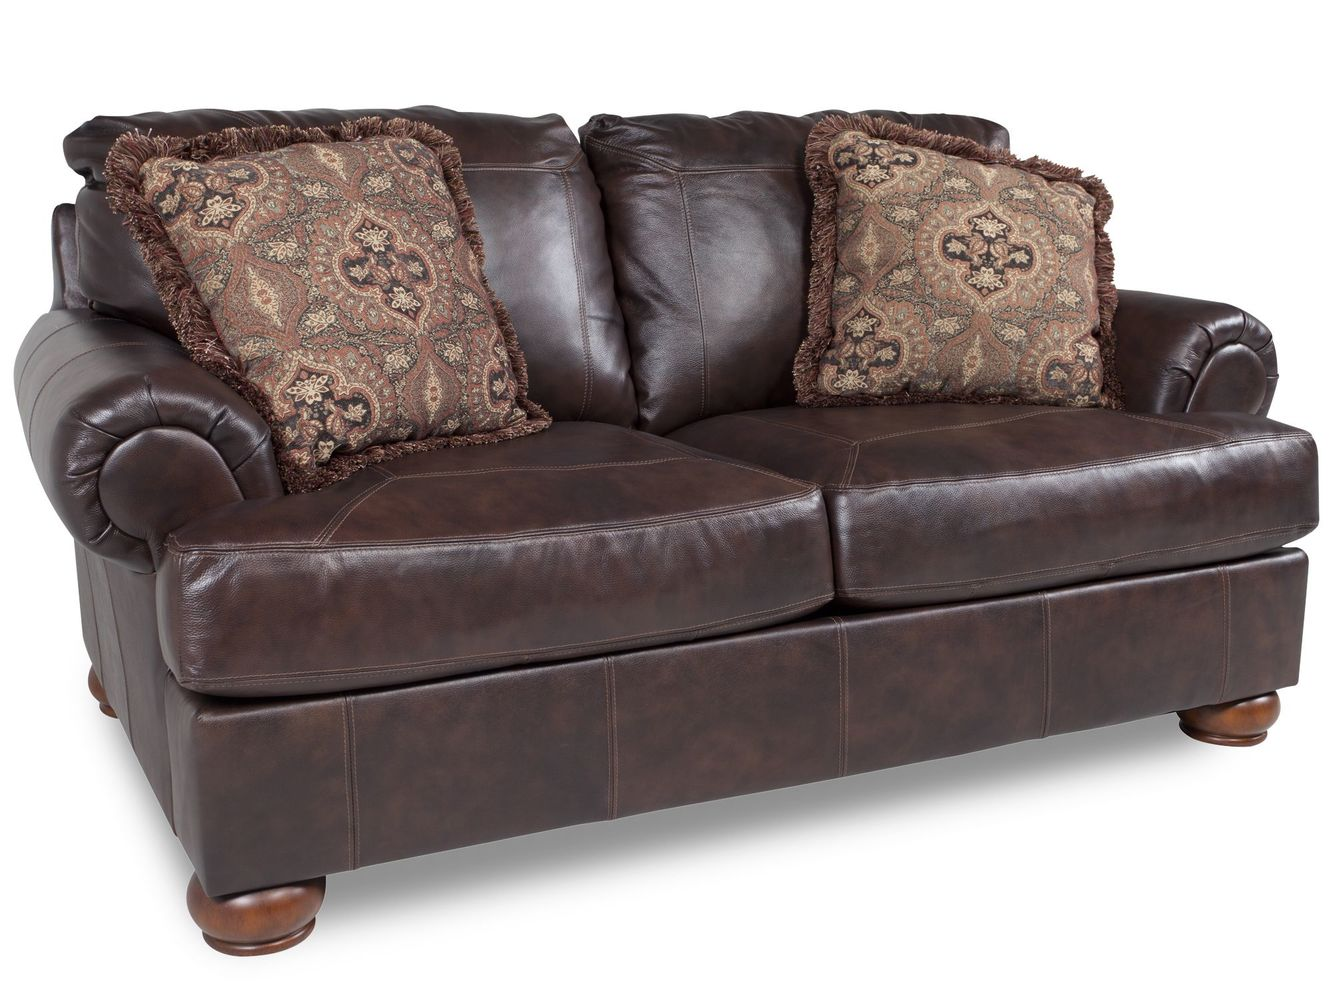 ashley axiom leather sofa ager sofas loveseat dallas tx living room